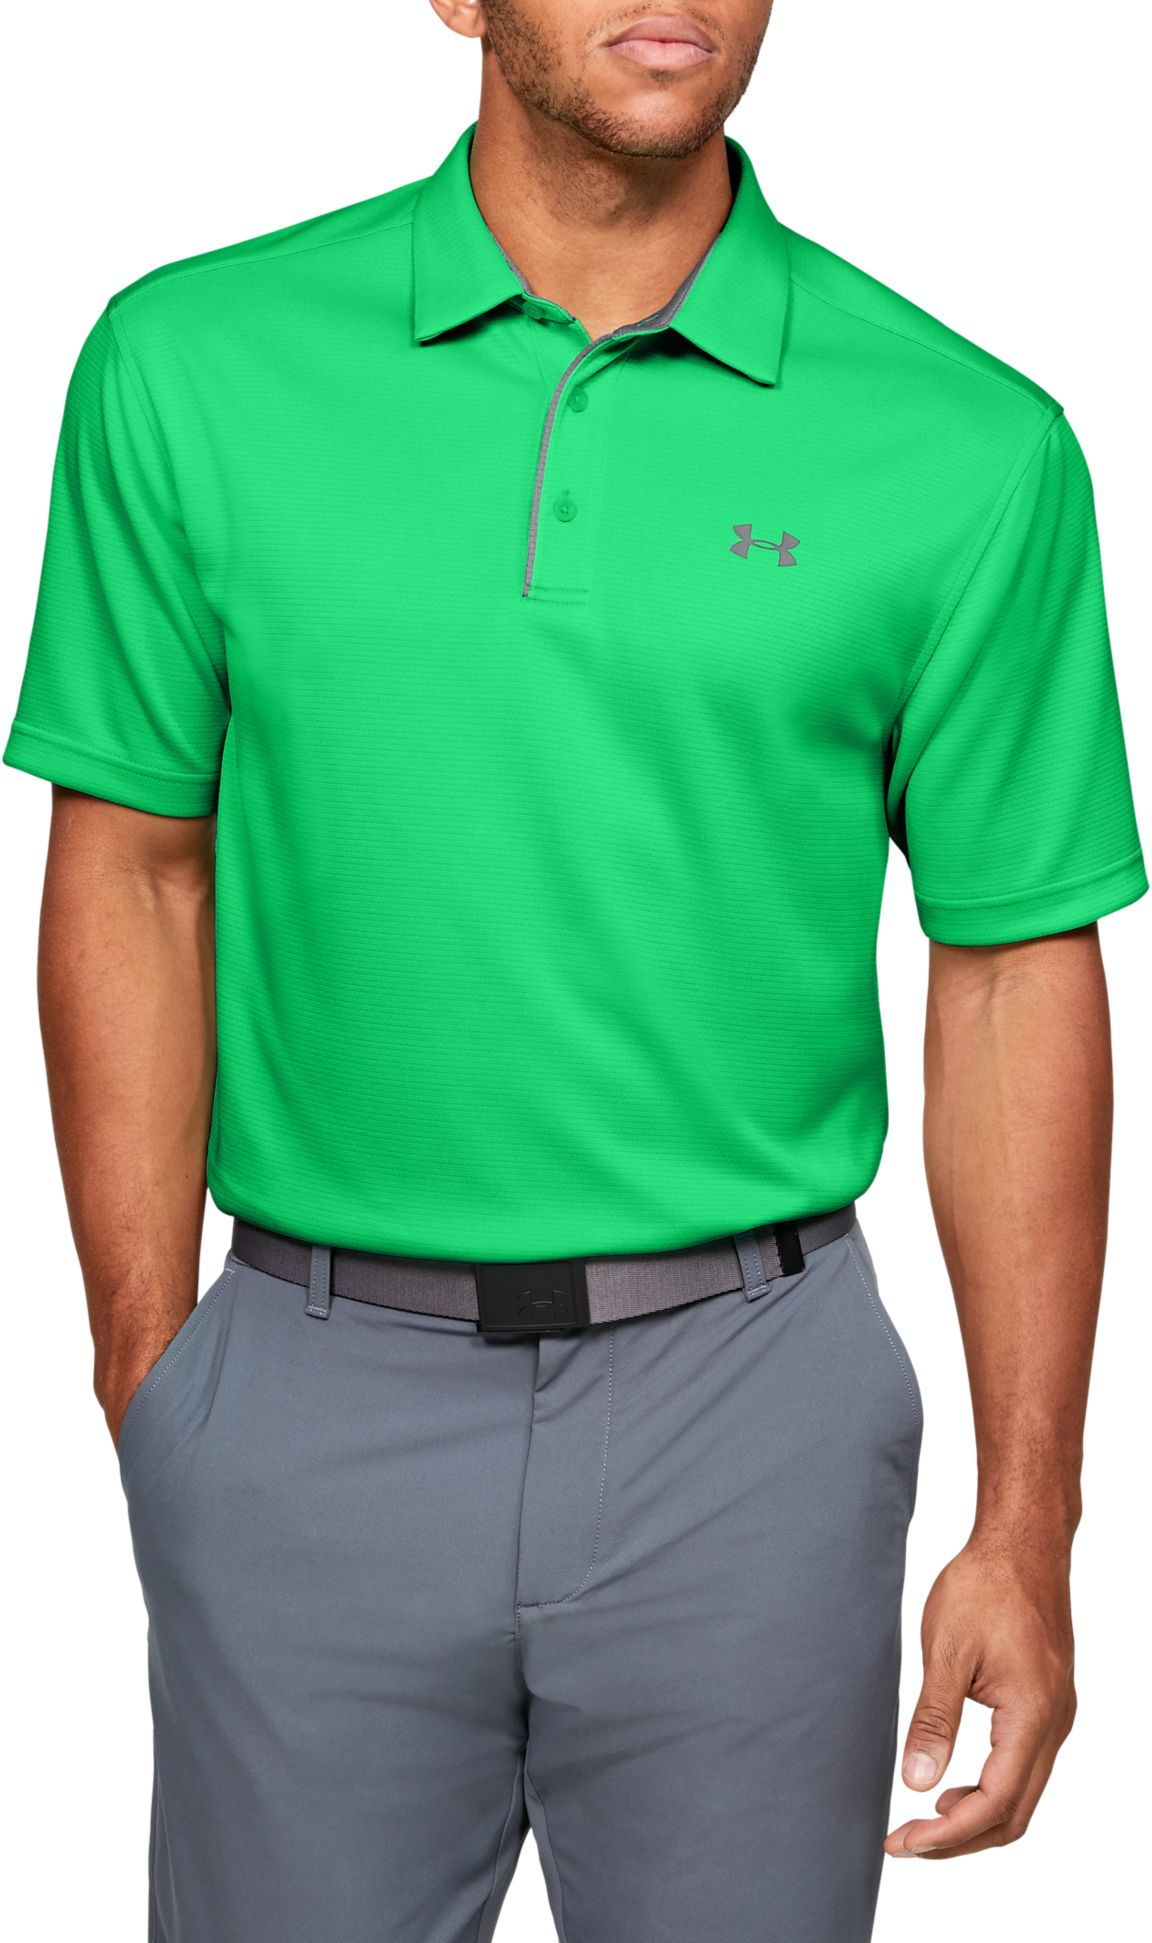 What is a Golf Shirt - Under Armour Golf Polo